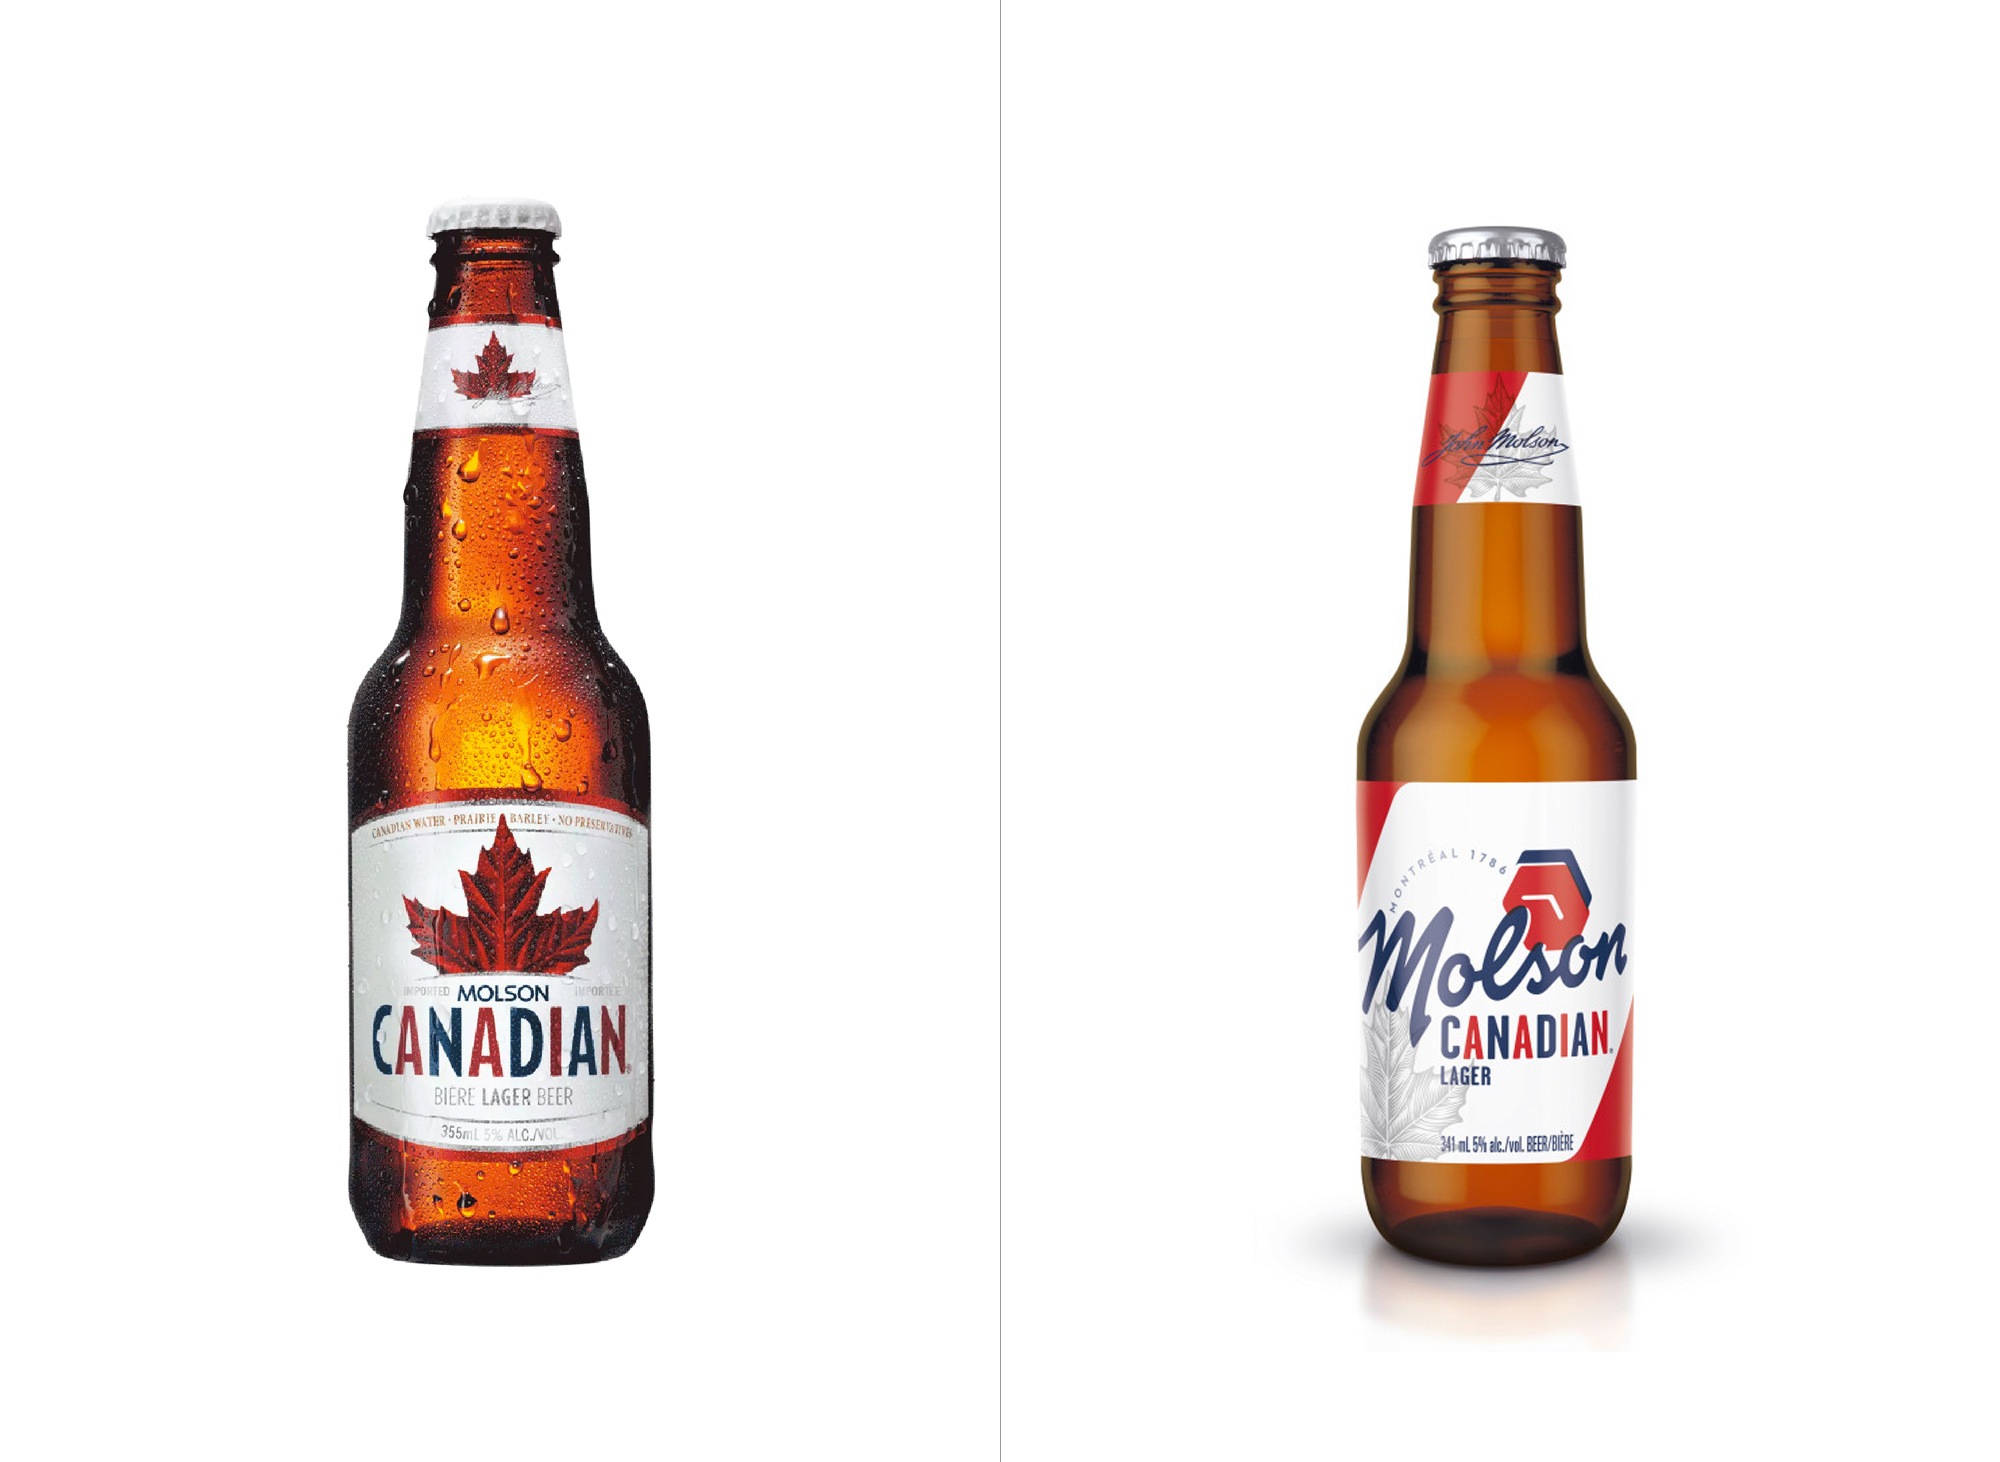 molson_canadian_2019_bottle_before_after.jpg